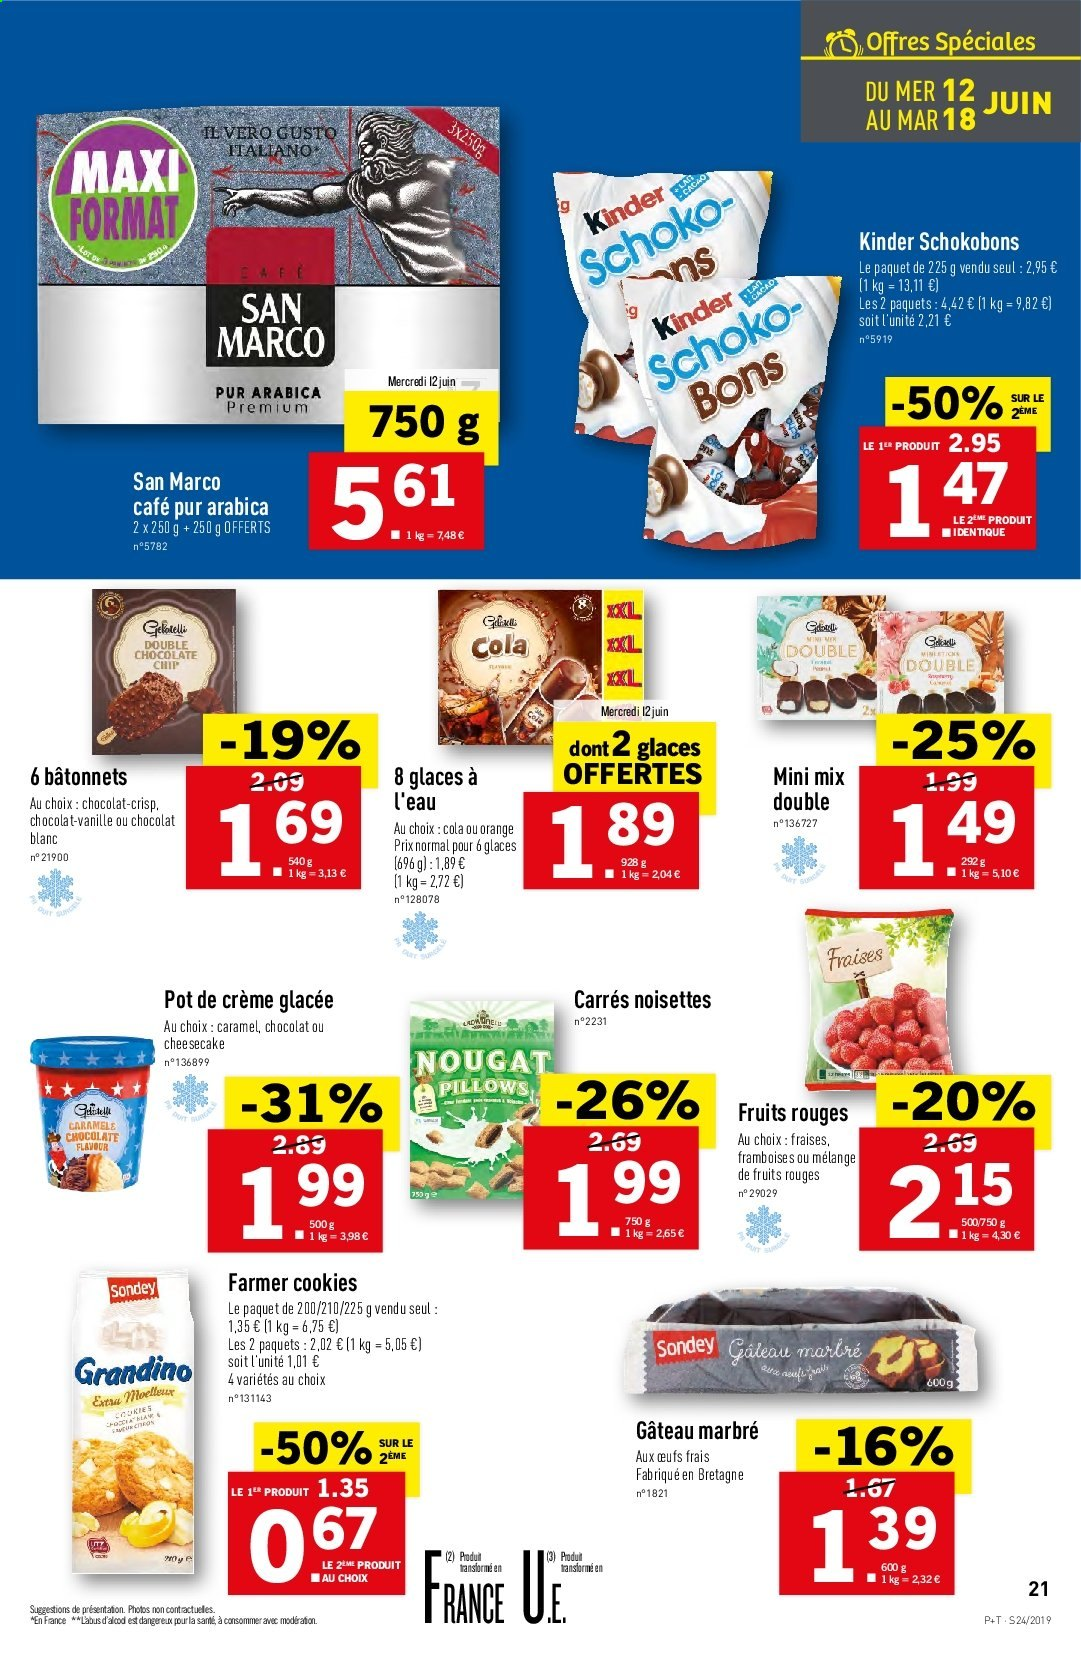 Catalogue Lidl - 12.06.2019 - 18.06.2019. Page 23.